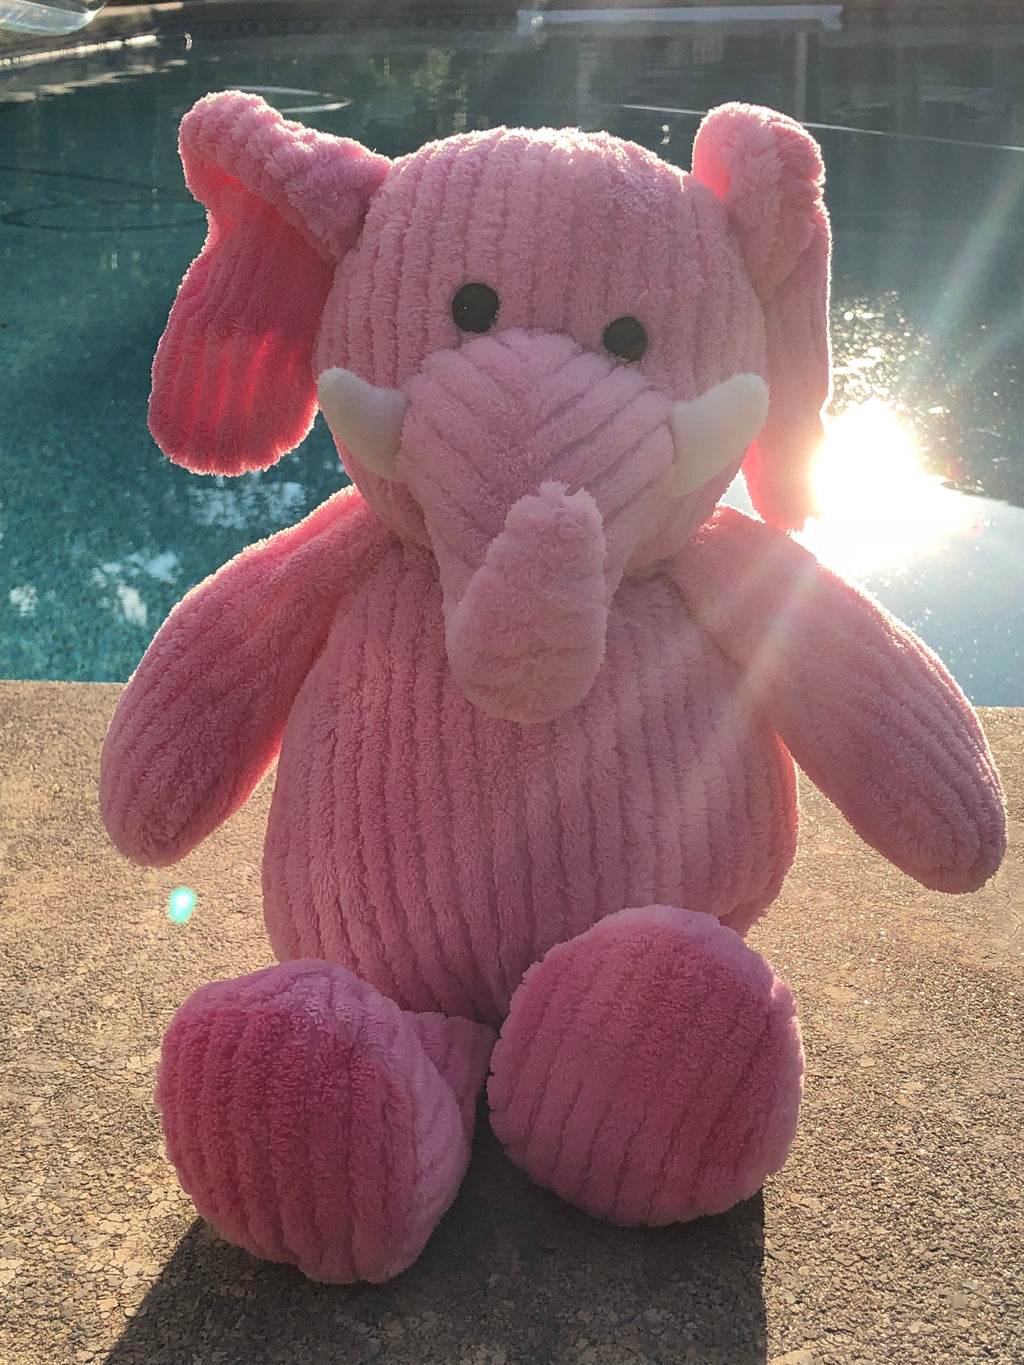 Bella, the Pink Elephant